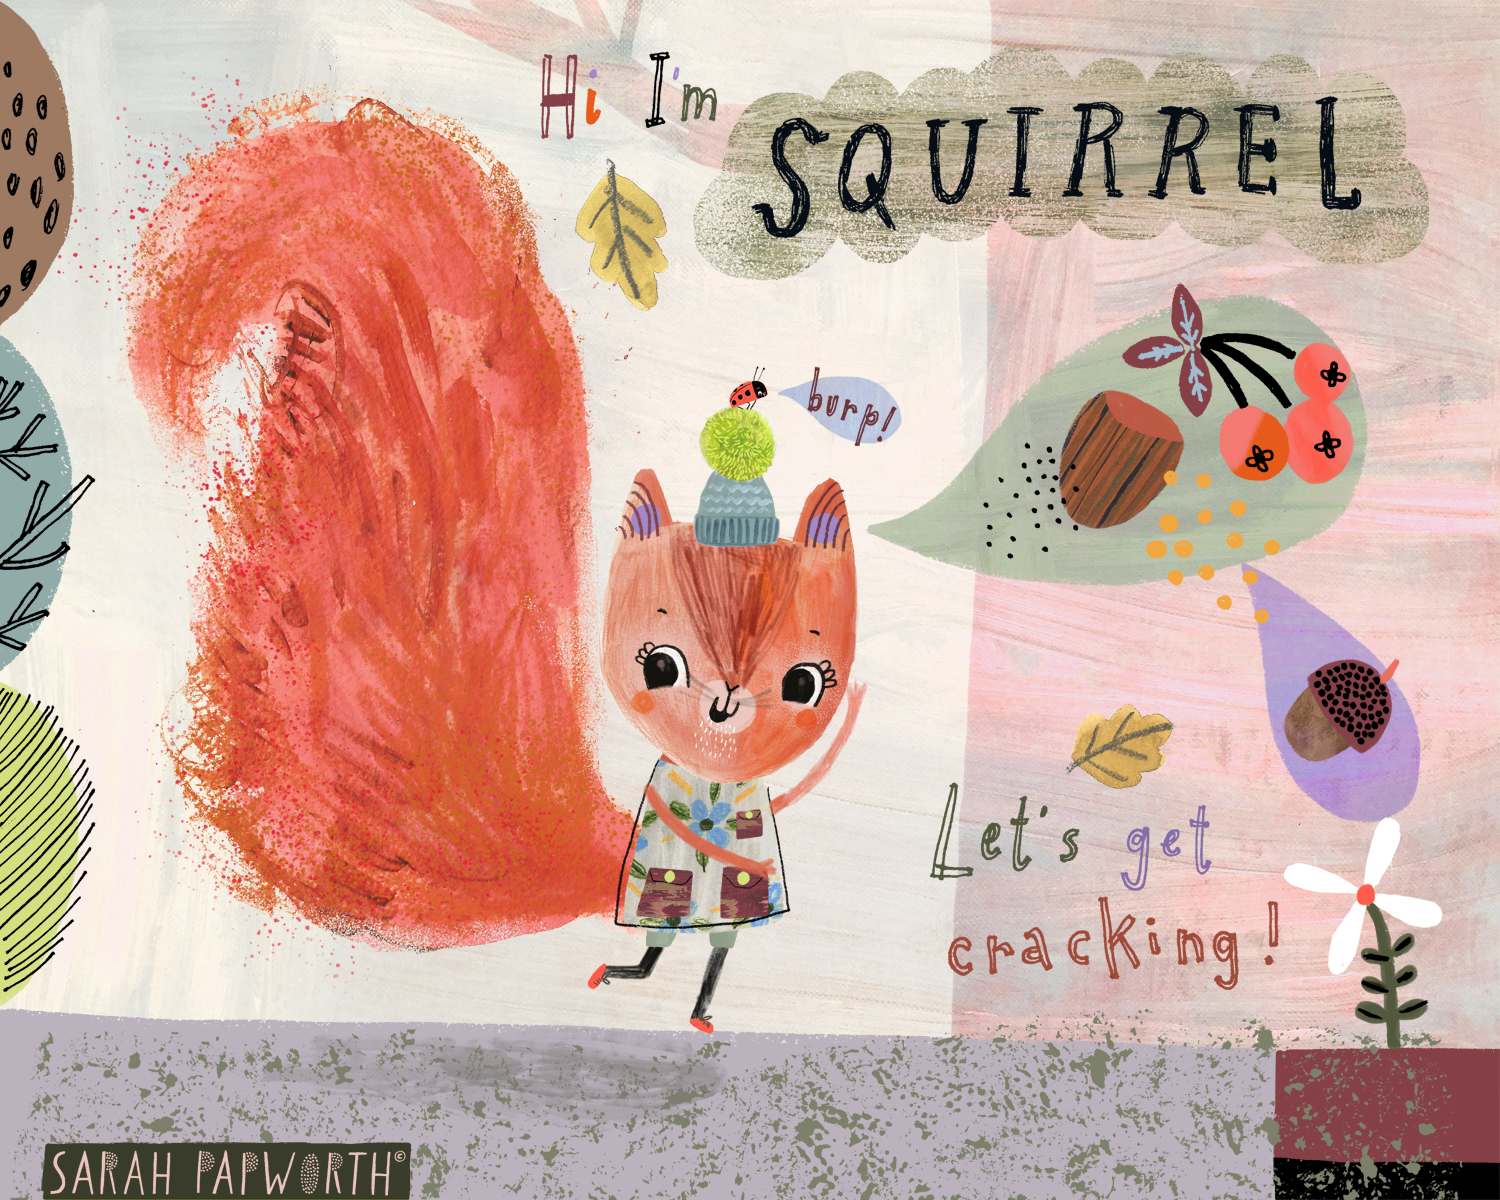 childrens book character page kids lit art sarah papworth illustration.jpg